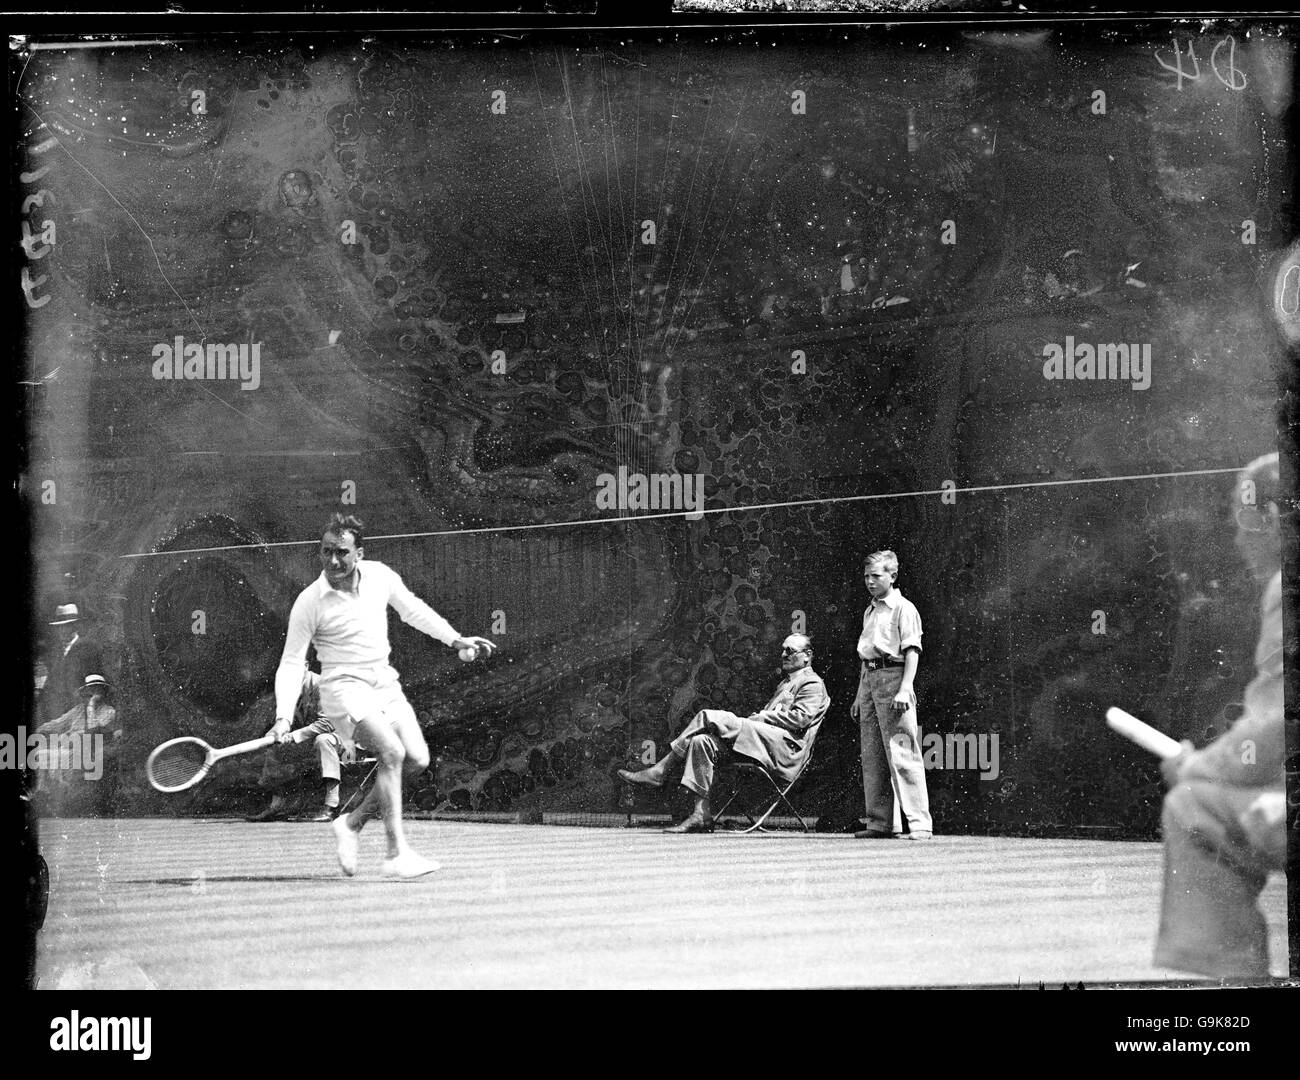 Tennis - Wimbledon Championships - Men's Singles - First Round - Fred Perry v M Bainville - Stock Image